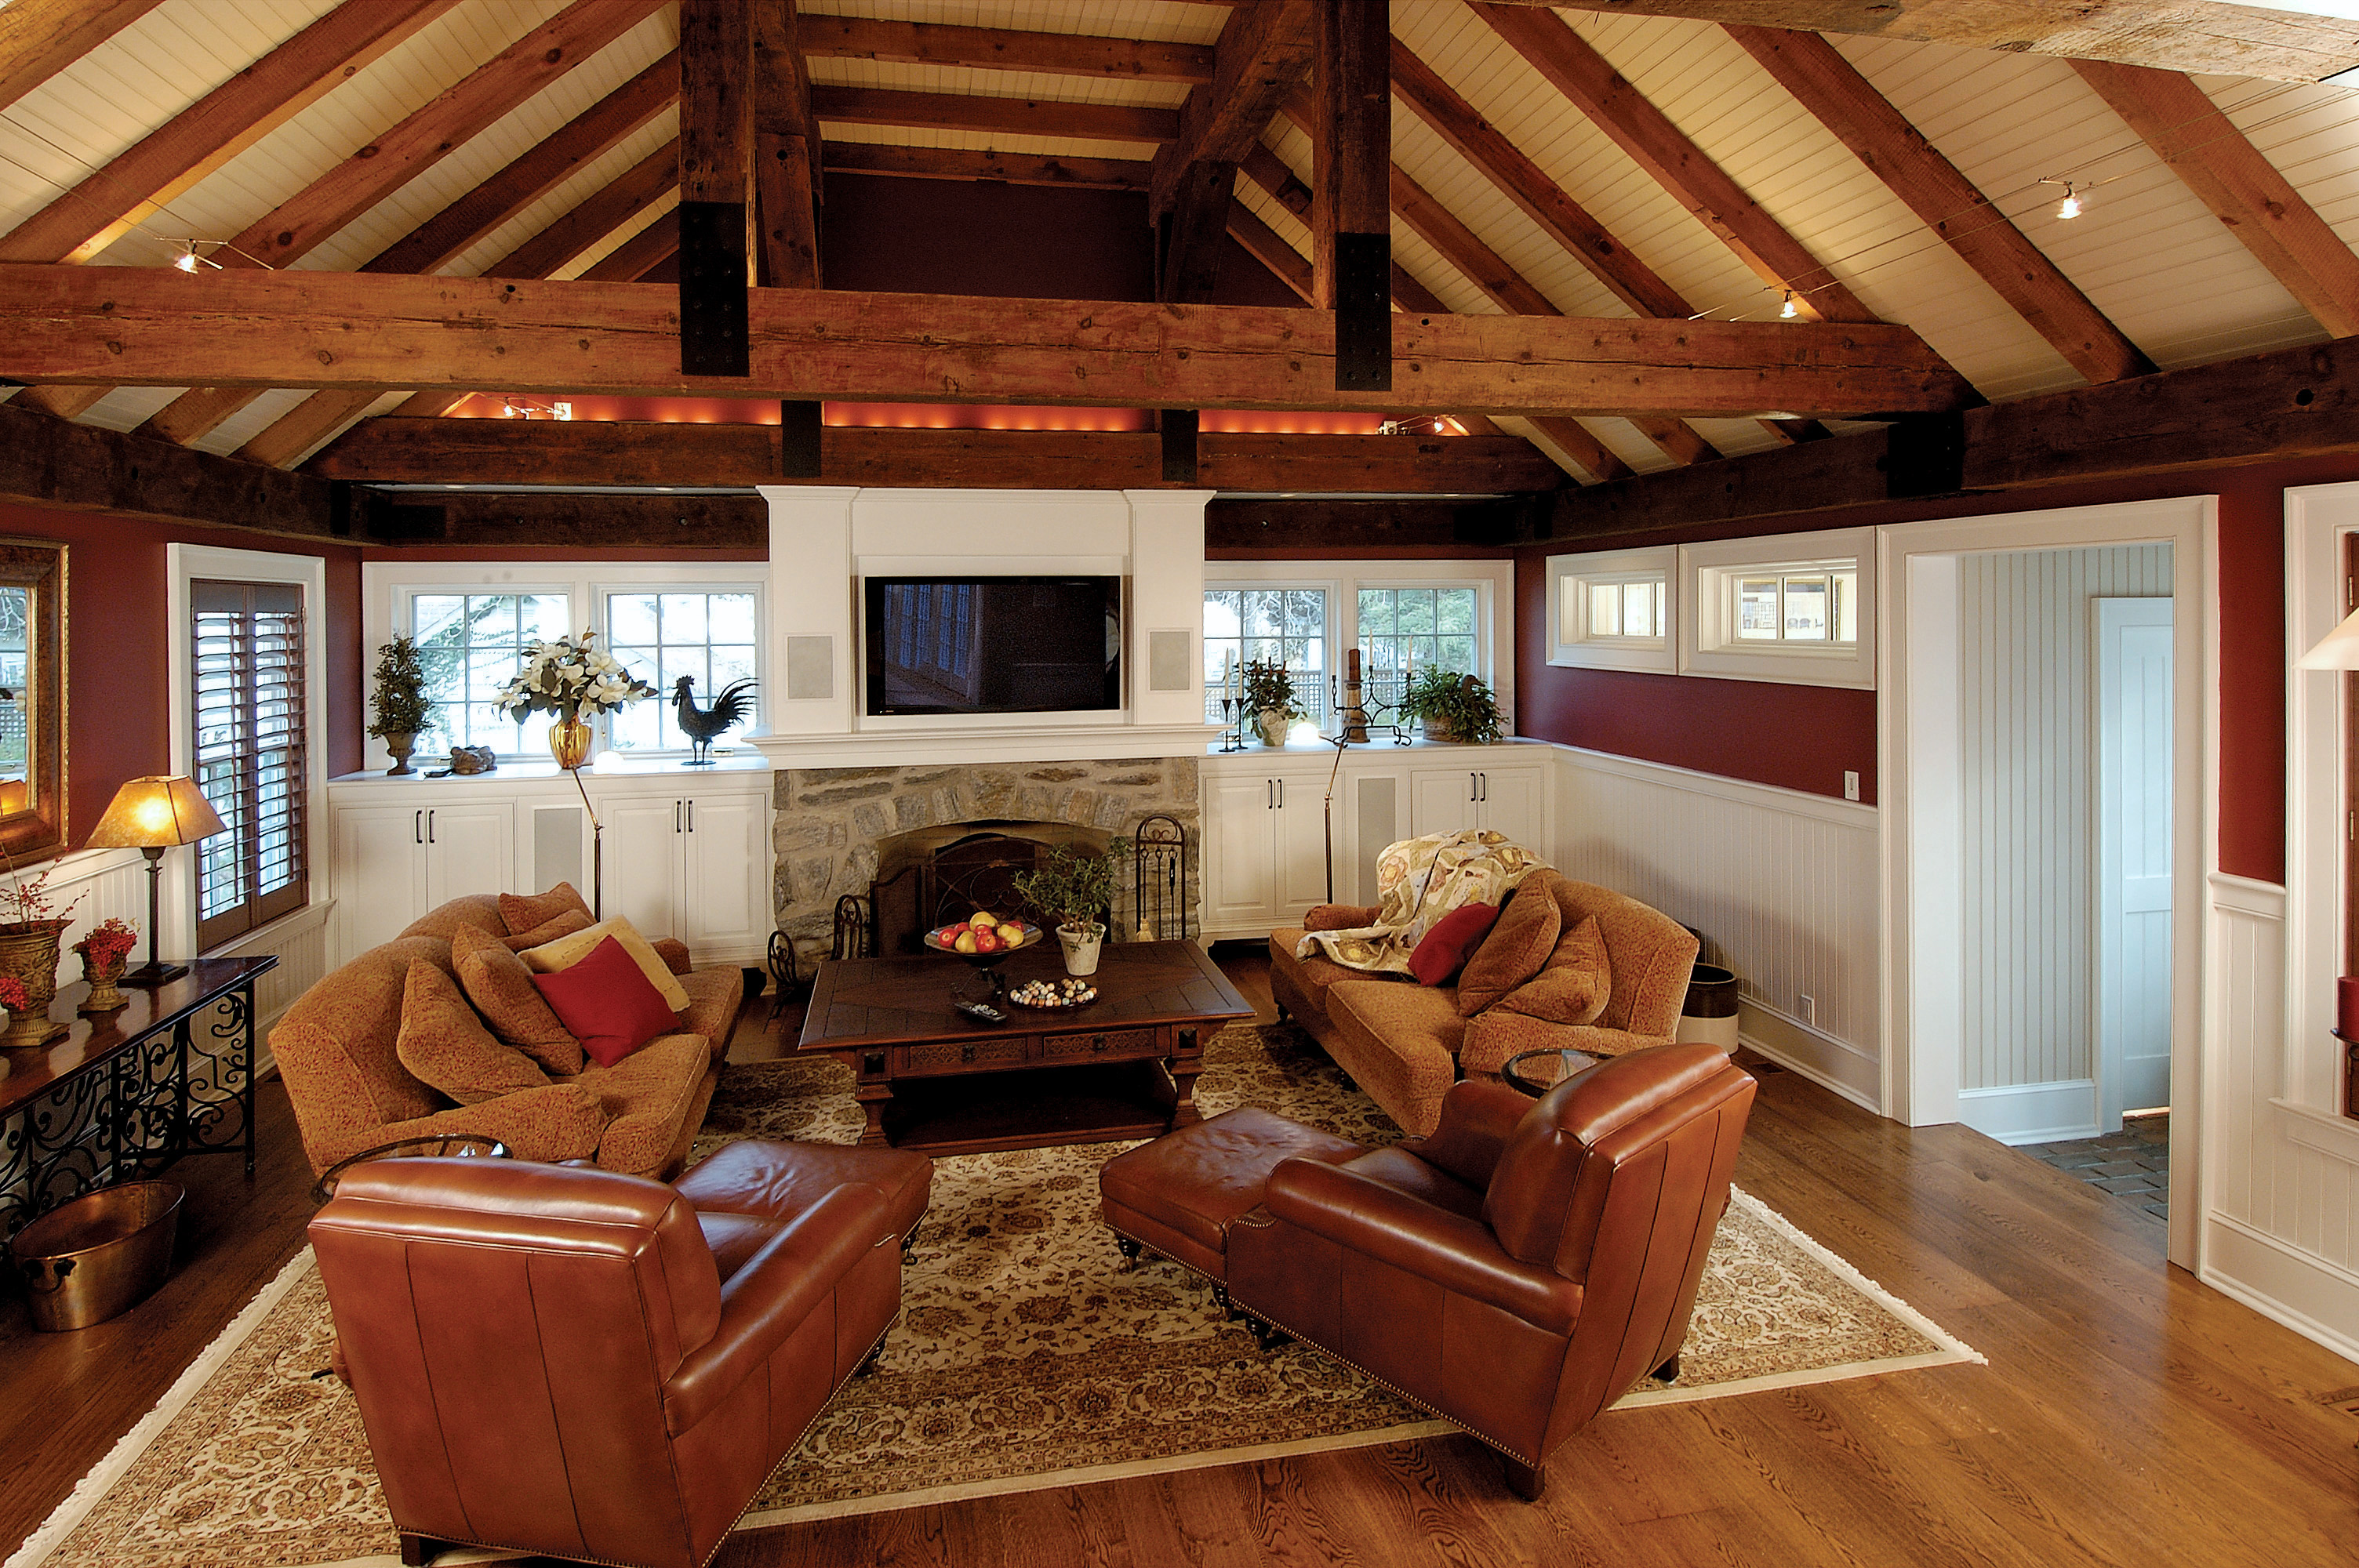 Family room addition with rustic beams and vaulted ceiling for Great room addition off kitchen